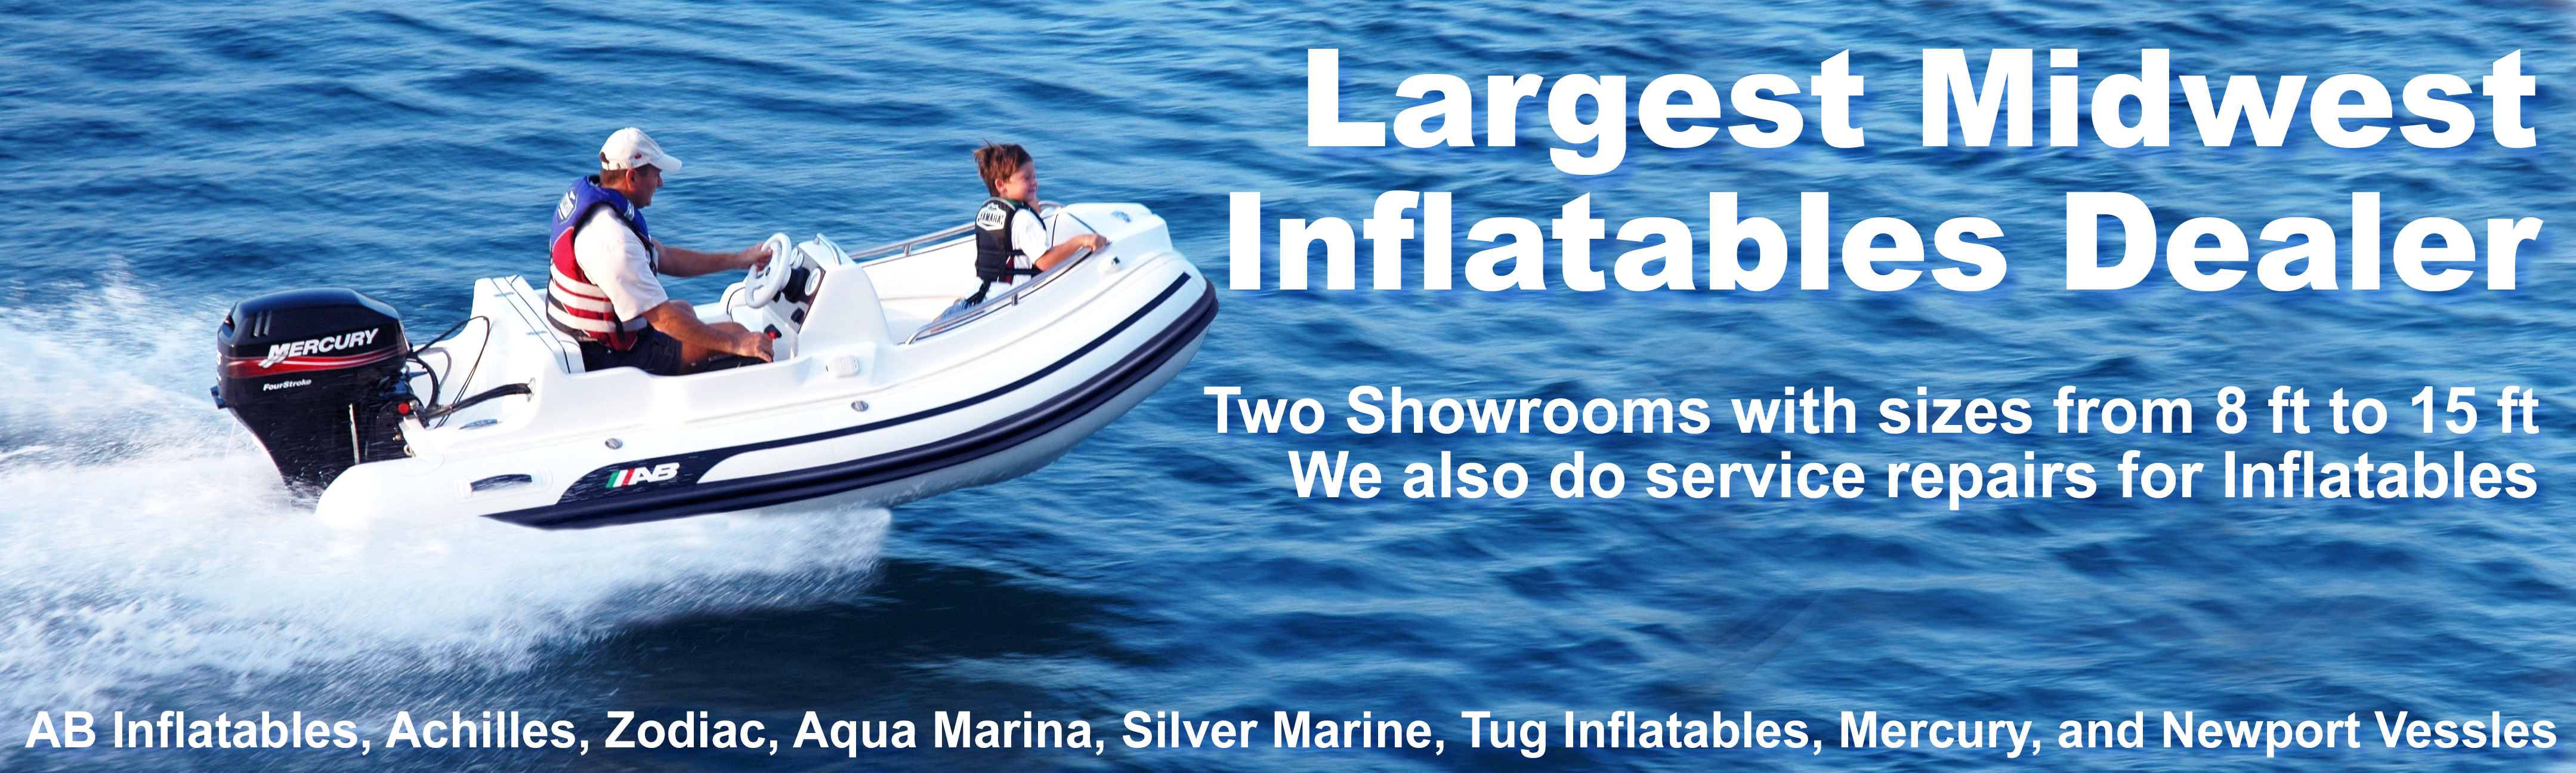 Wolf's Marine is the largest inflatables dealer in the midwest